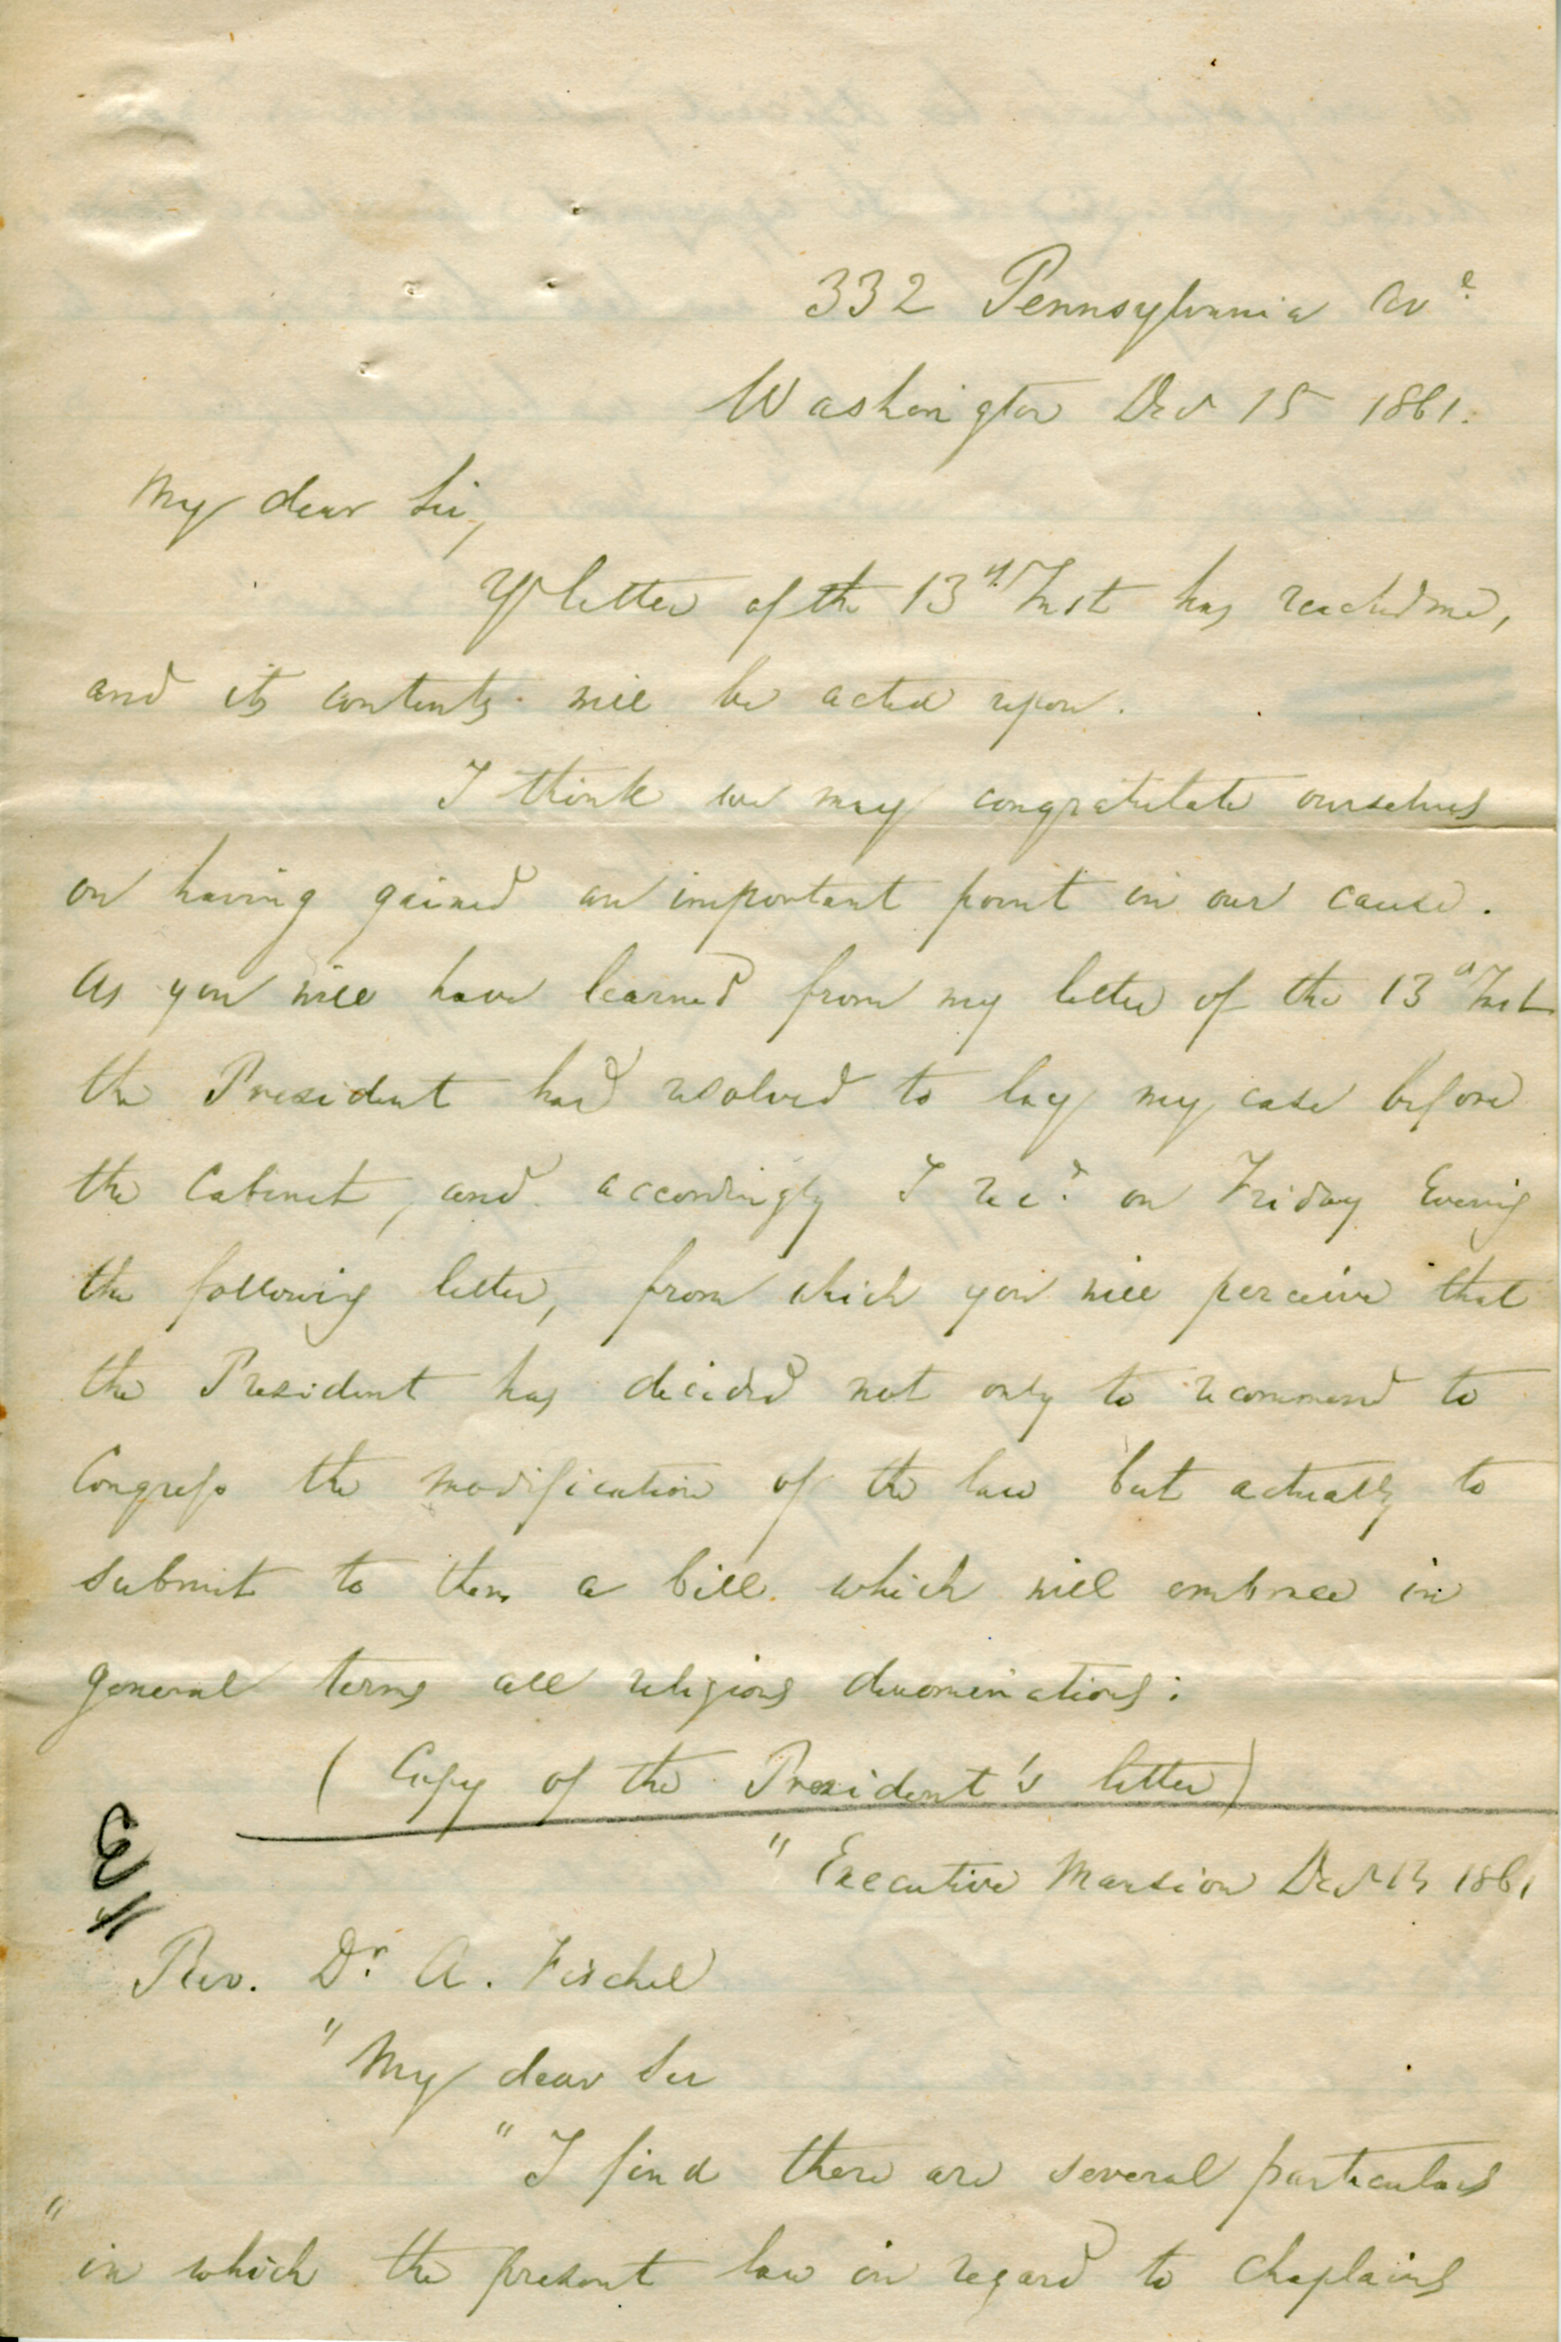 Fischel letter to Henry Hart re President Lincoln, December 11, 1861.